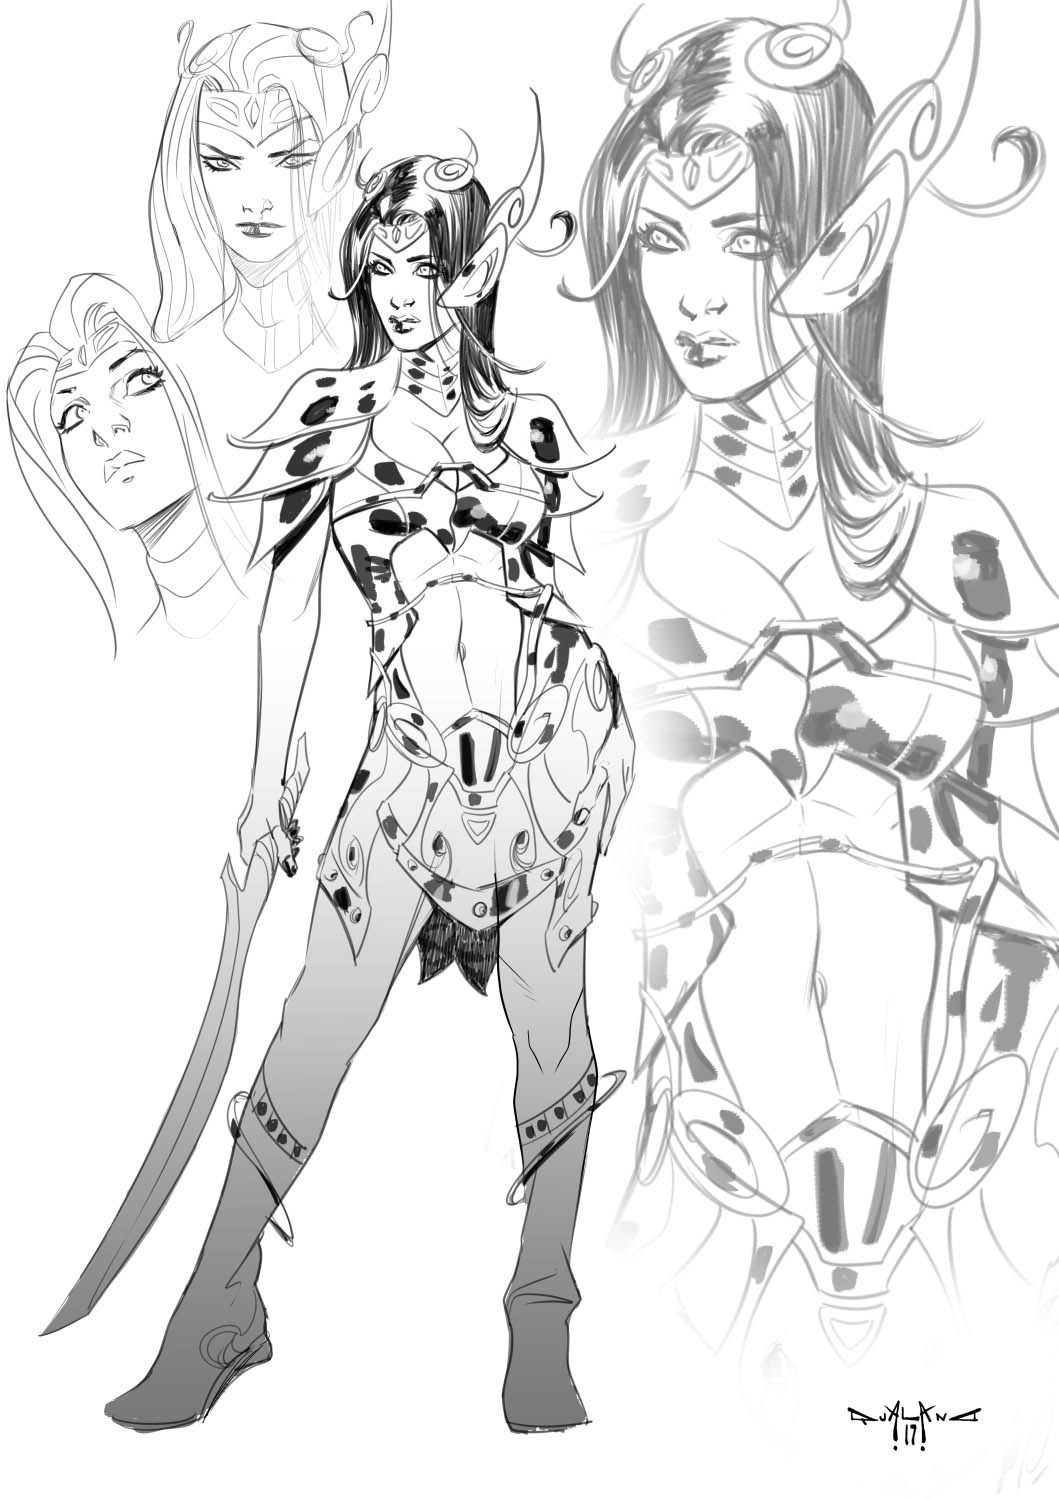 pasquale-qualano-portfolio-covers-Dejah-Thoris-Sketch-A---